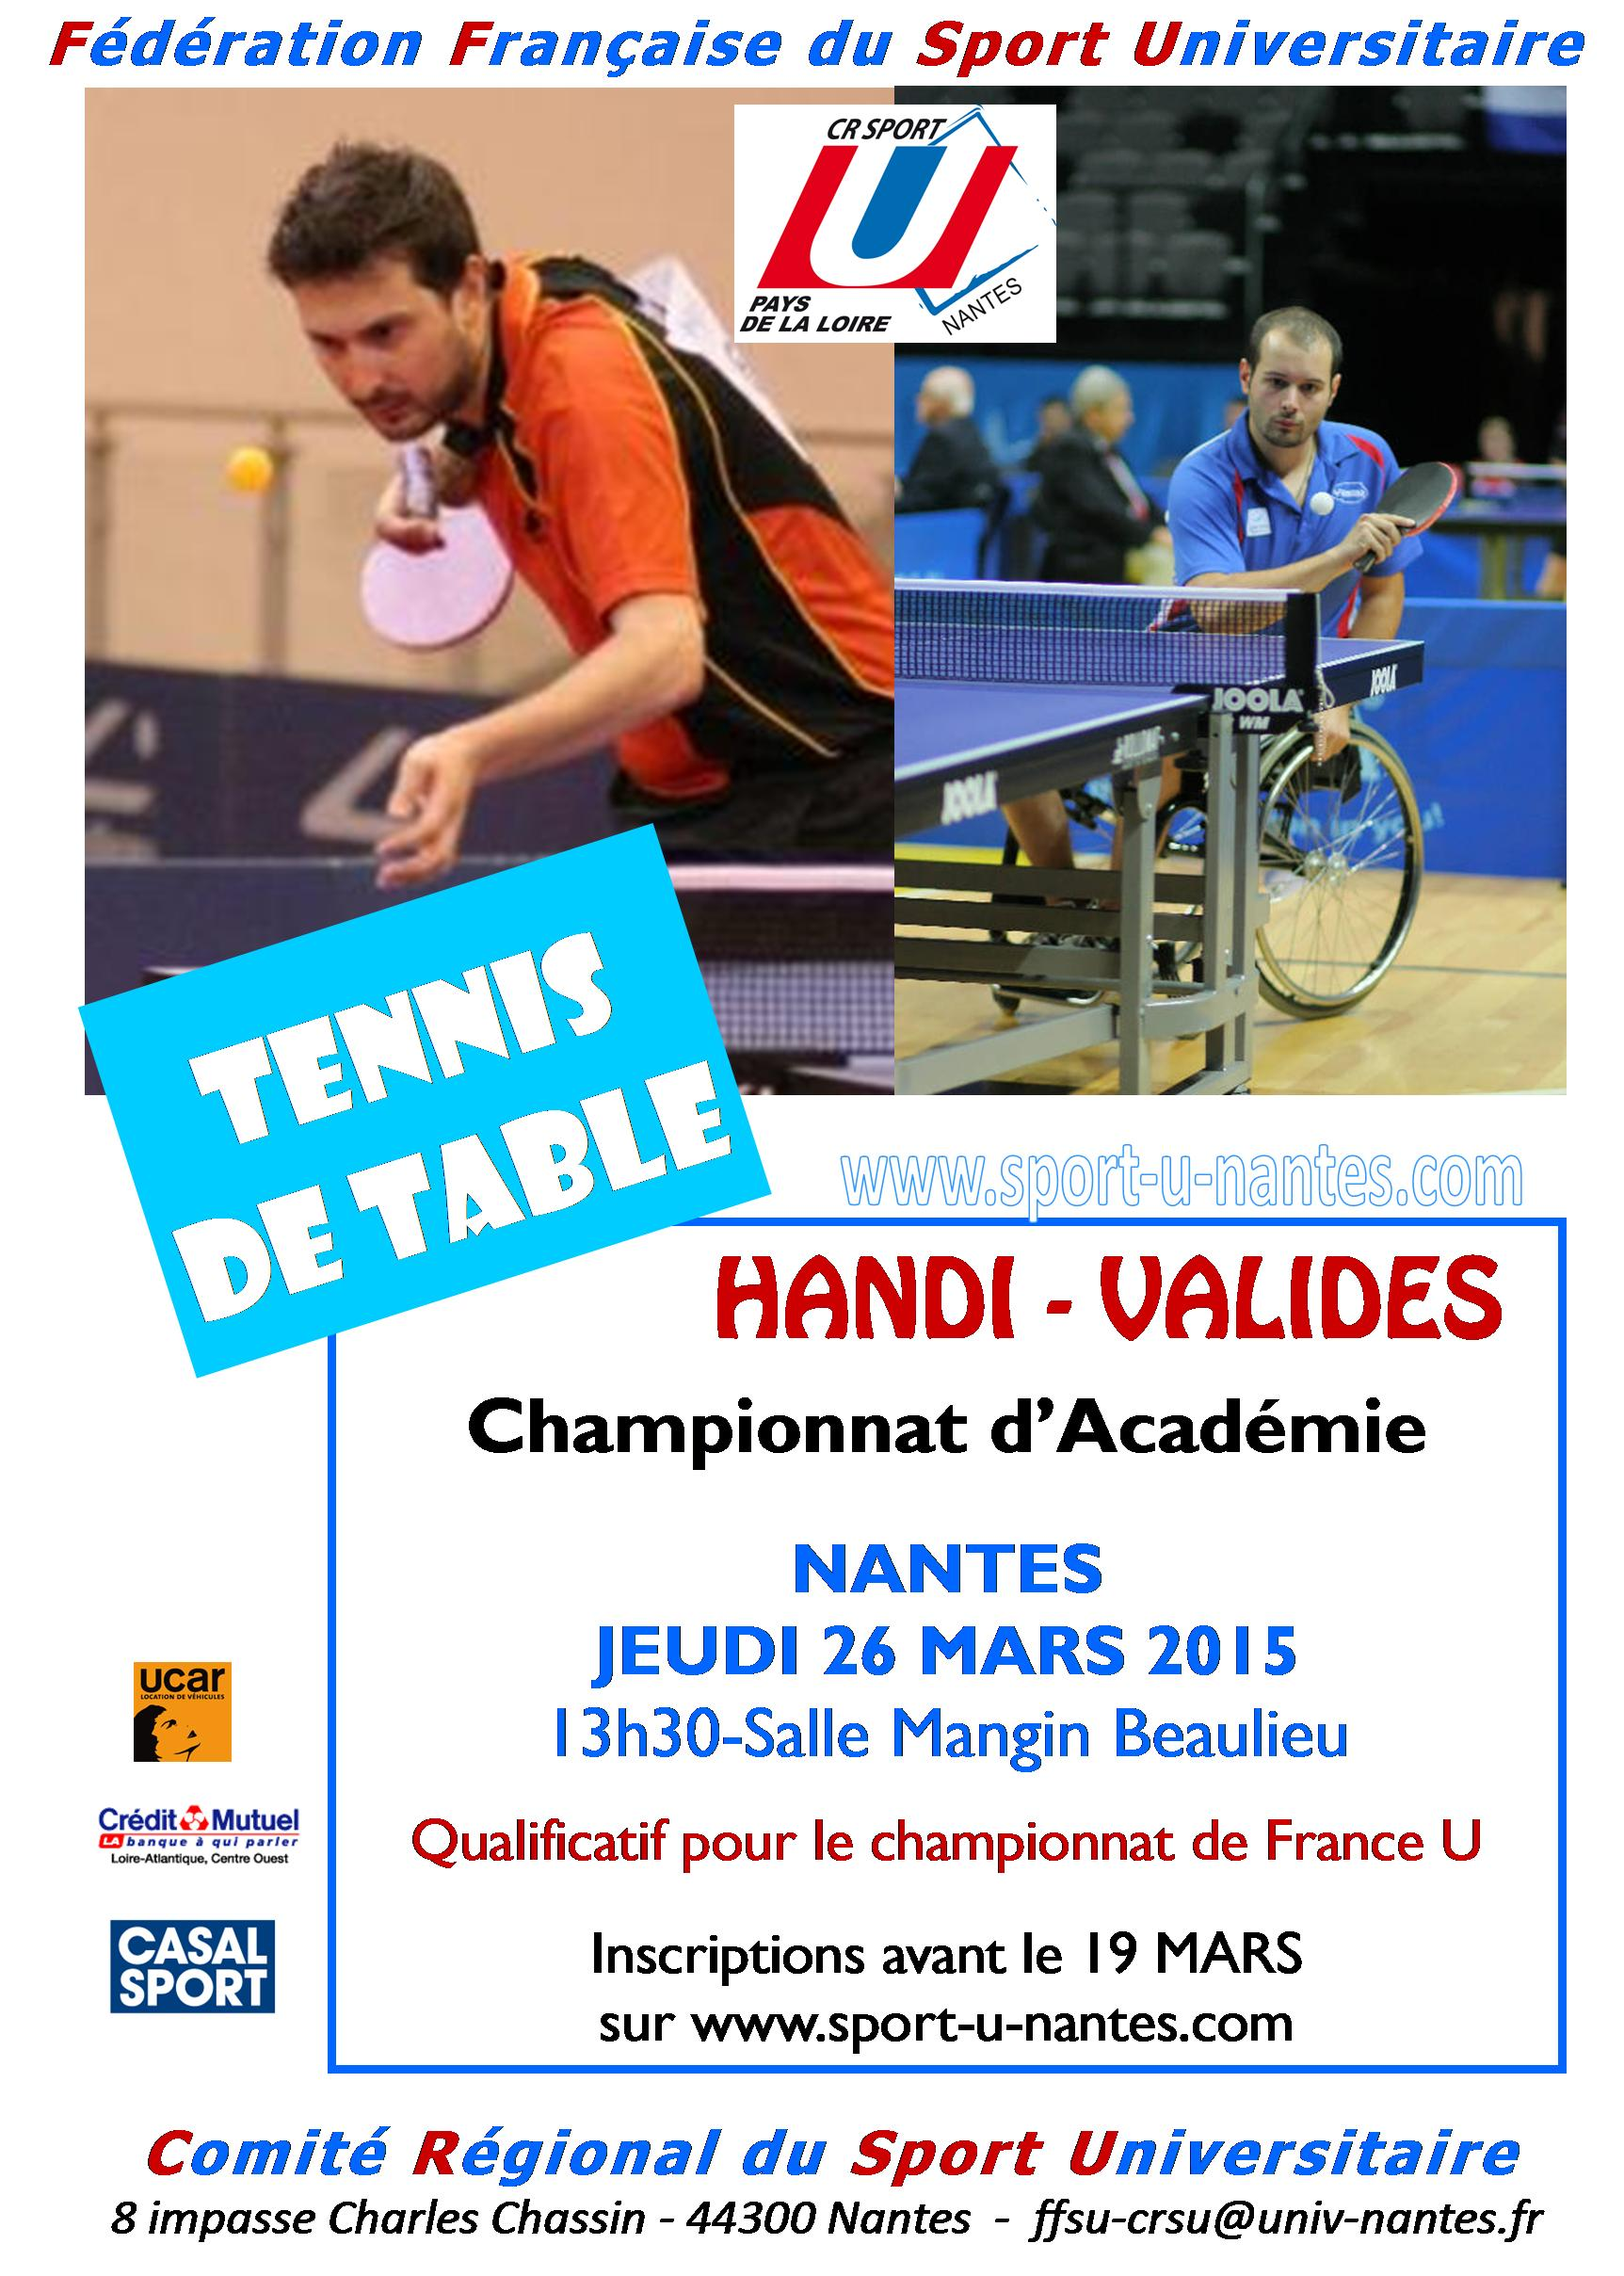 Championnat d acad mie handi valides le 26 mars nantes tennis de table ligue des pays de la - Ligue d auvergne de tennis de table ...